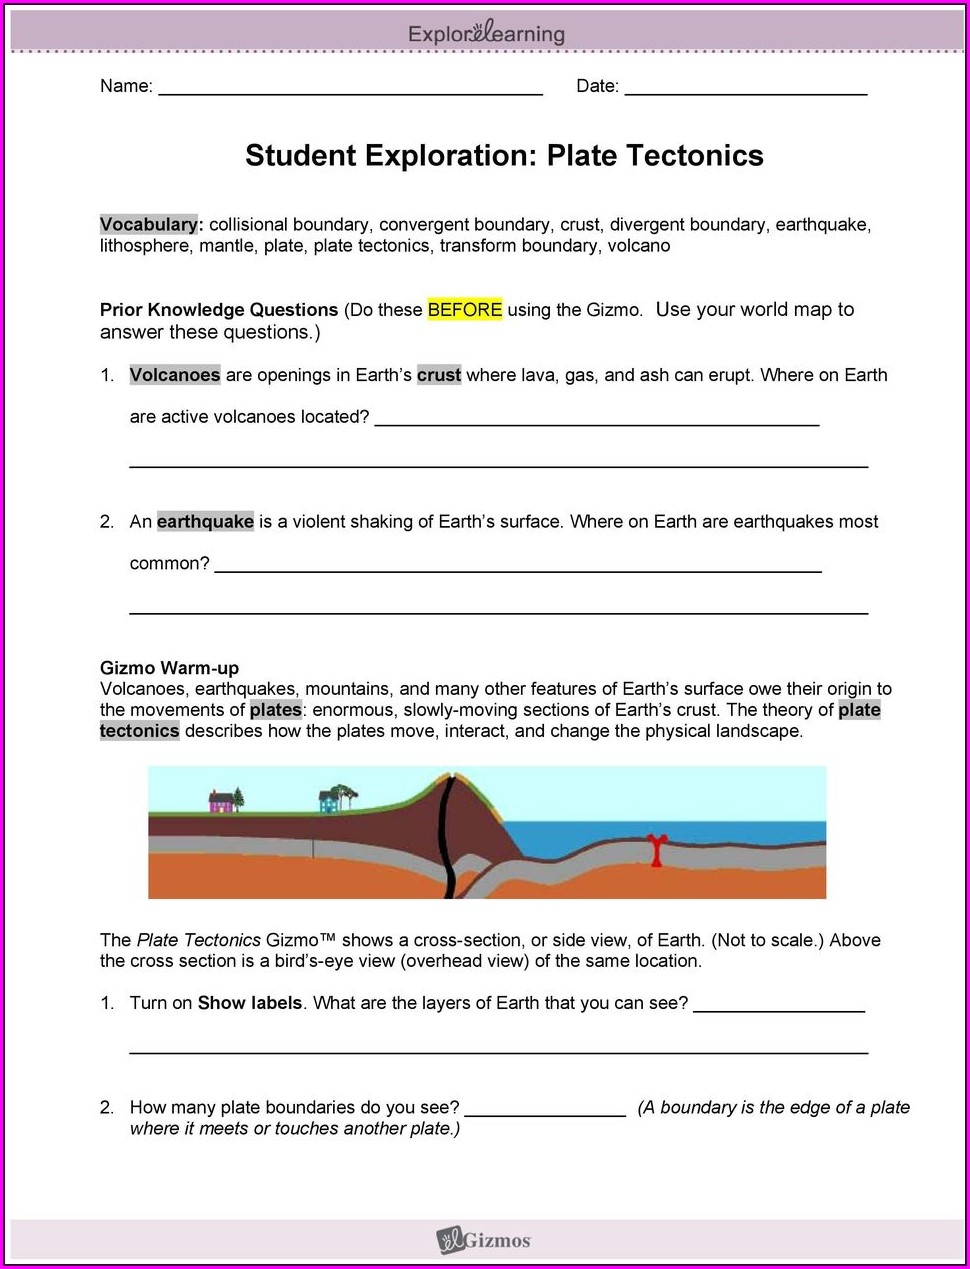 Student Exploration Plate Tectonics Worksheet Answers